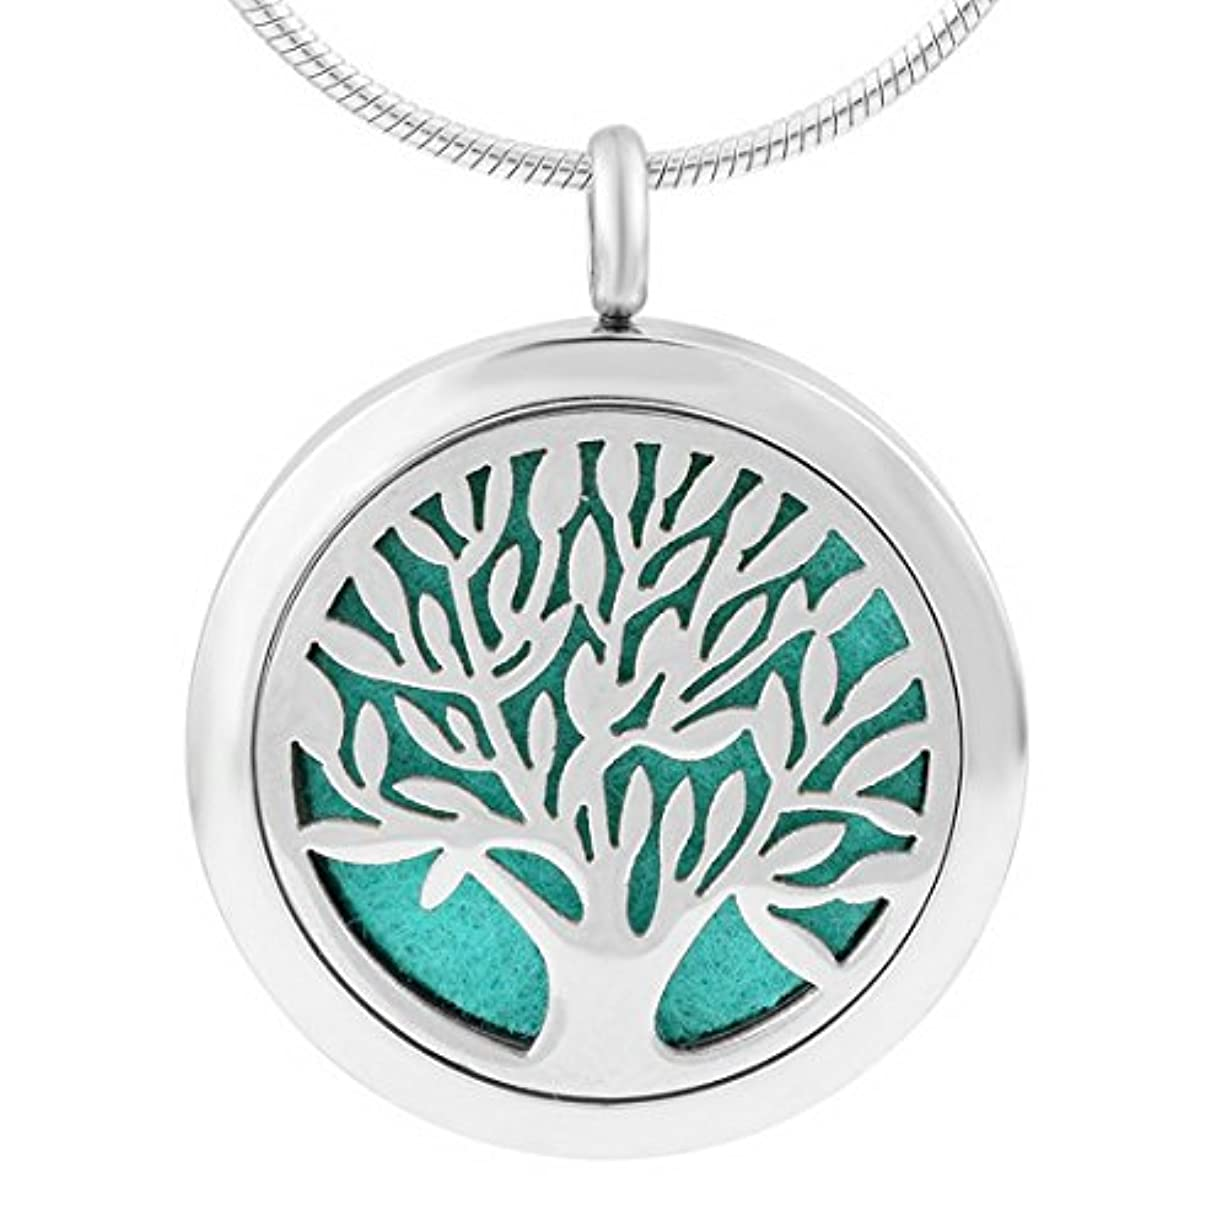 MJARTORIAステンレススチールTree of Life Aromatherapy Essential Oil Diffuserロケットペンダントネックレス